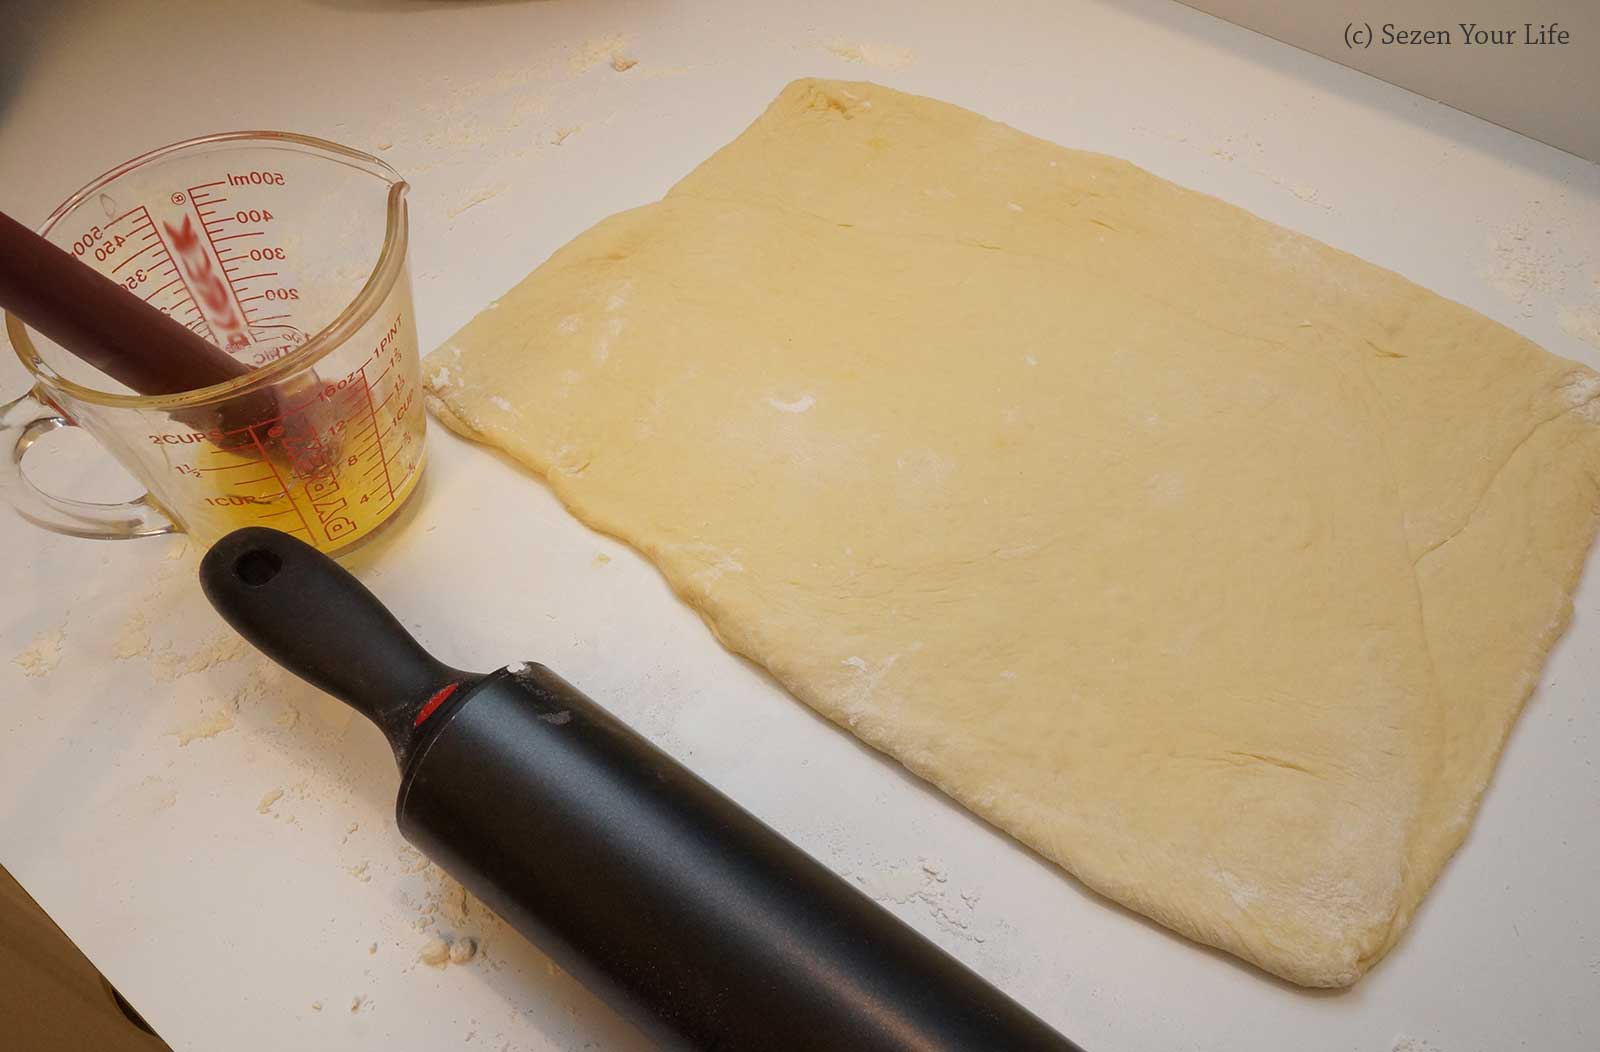 Cinnamon Roll brushing with Melted Butter by Sarah Franzen